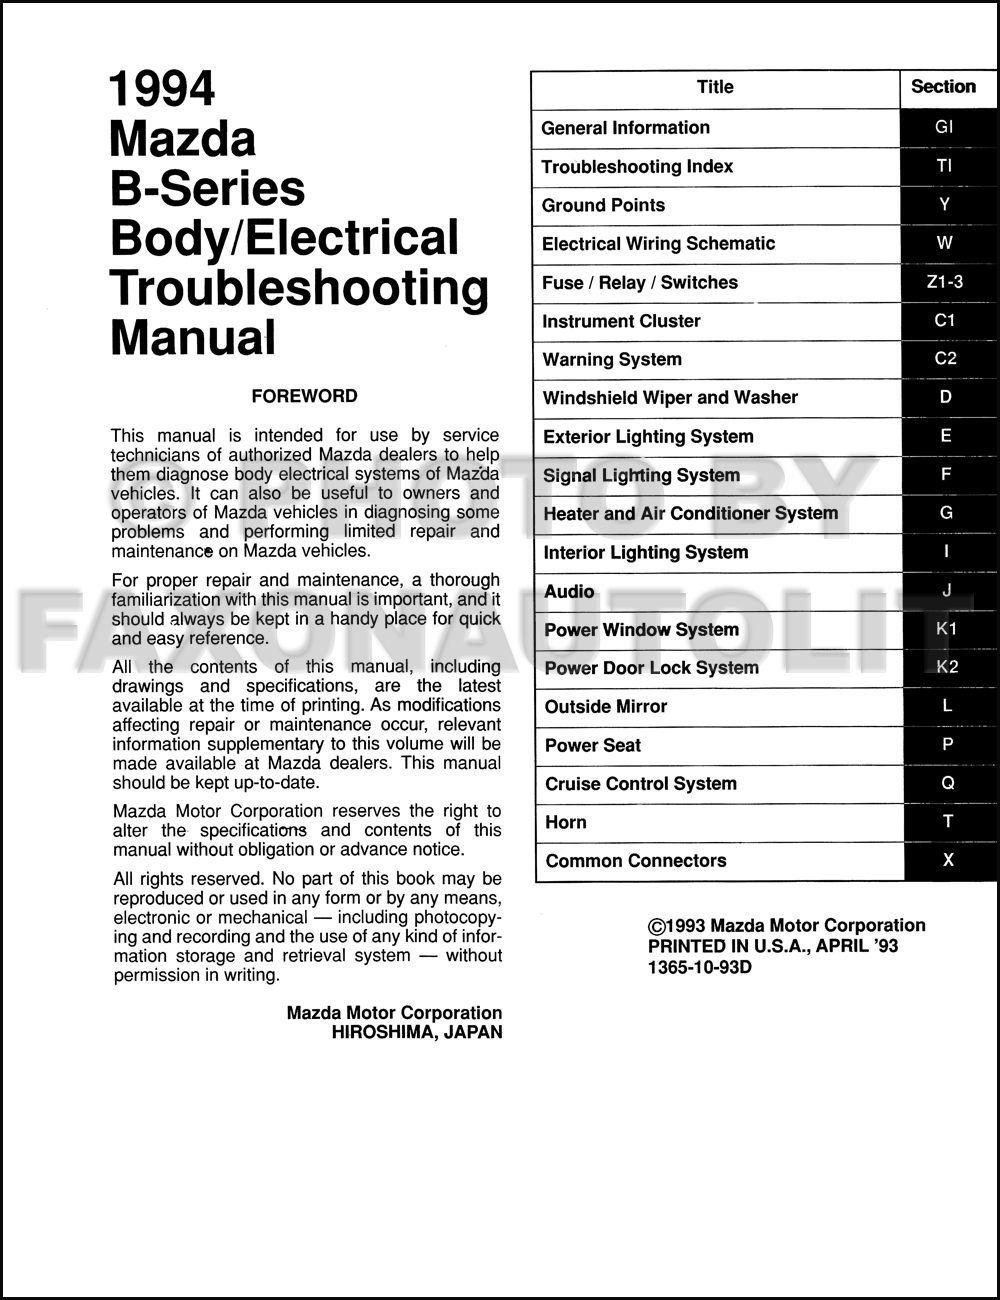 1996 Mazda Pickup Truck Body Electrical Troubleshooting Manual Original Relay Circuit Click On Thumbnail To Zoom